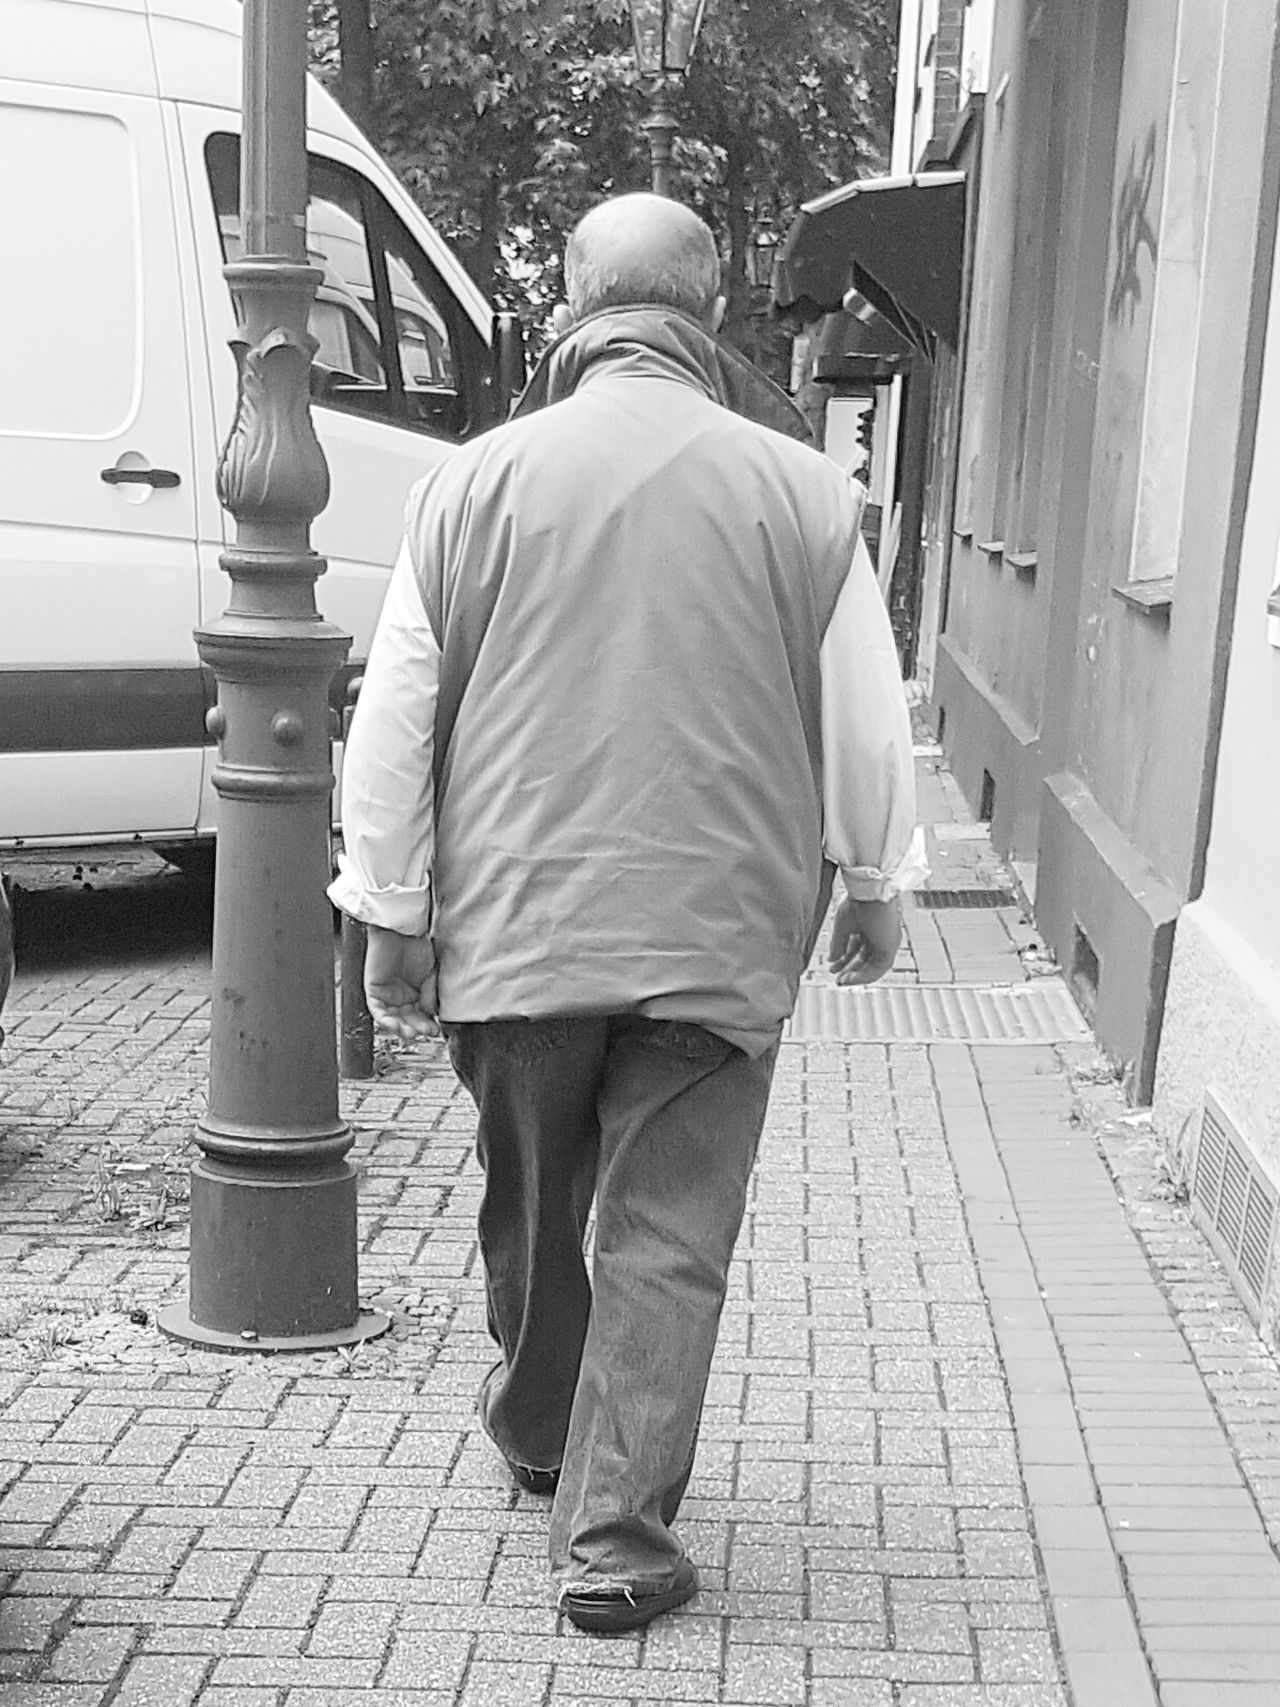 Portrait Portrait Of A Man  Portrait Photography Black And White Portrait Black And White Photography Black And White Collection  Streetphoto_bw Street Life Street Photography City Life City Street City View  Men My City Streetphoto Old Men Talking Photo People_bw Talking Pictures From Behind GalaxyS7Edge Walking People Of EyeEm Old Man Walking Alone...